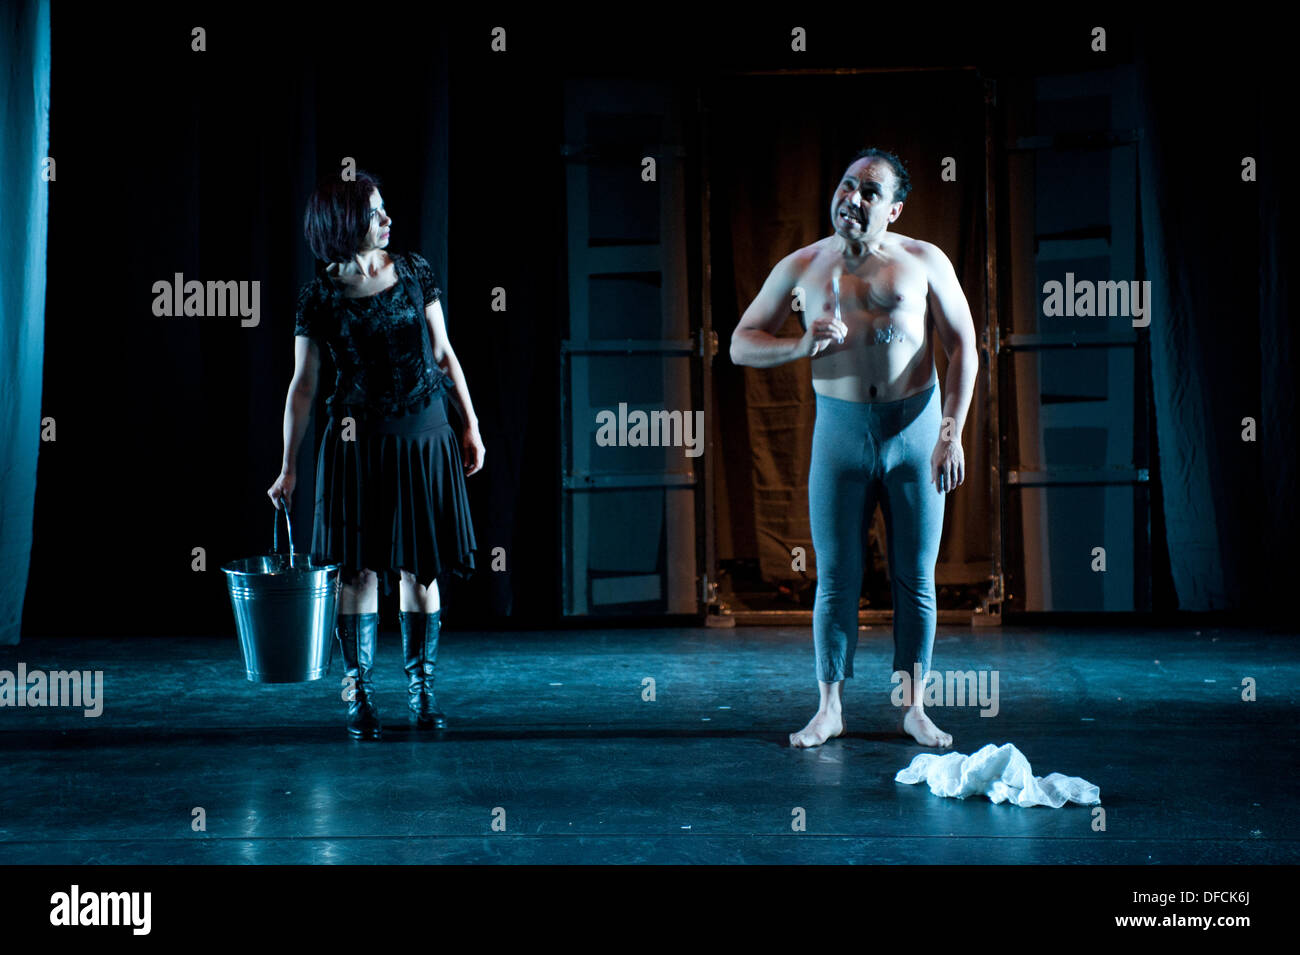 London, UK - 2 October 2013: performers of the Bolivian company Teatro de los Andes transpose Hamlet to Bolivia in this production. , Credit:  Piero Cruciatti/Alamy Live News - Stock Image